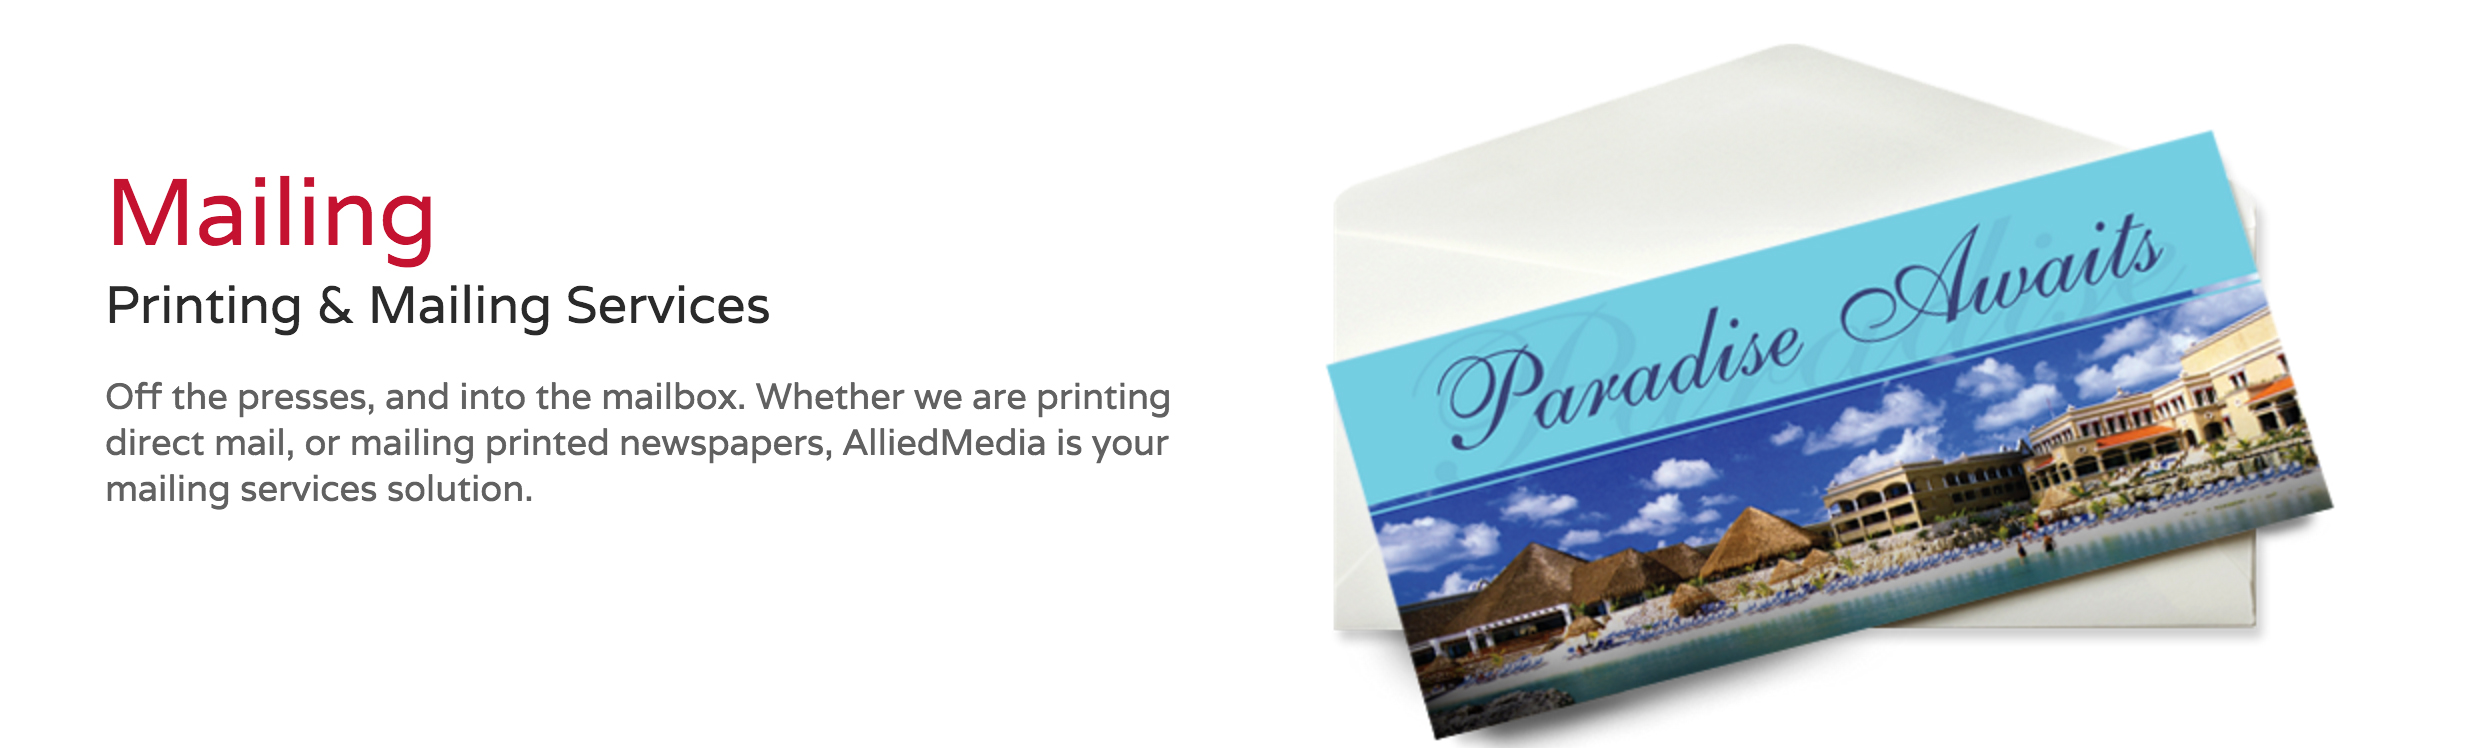 Full color printing and mailing services